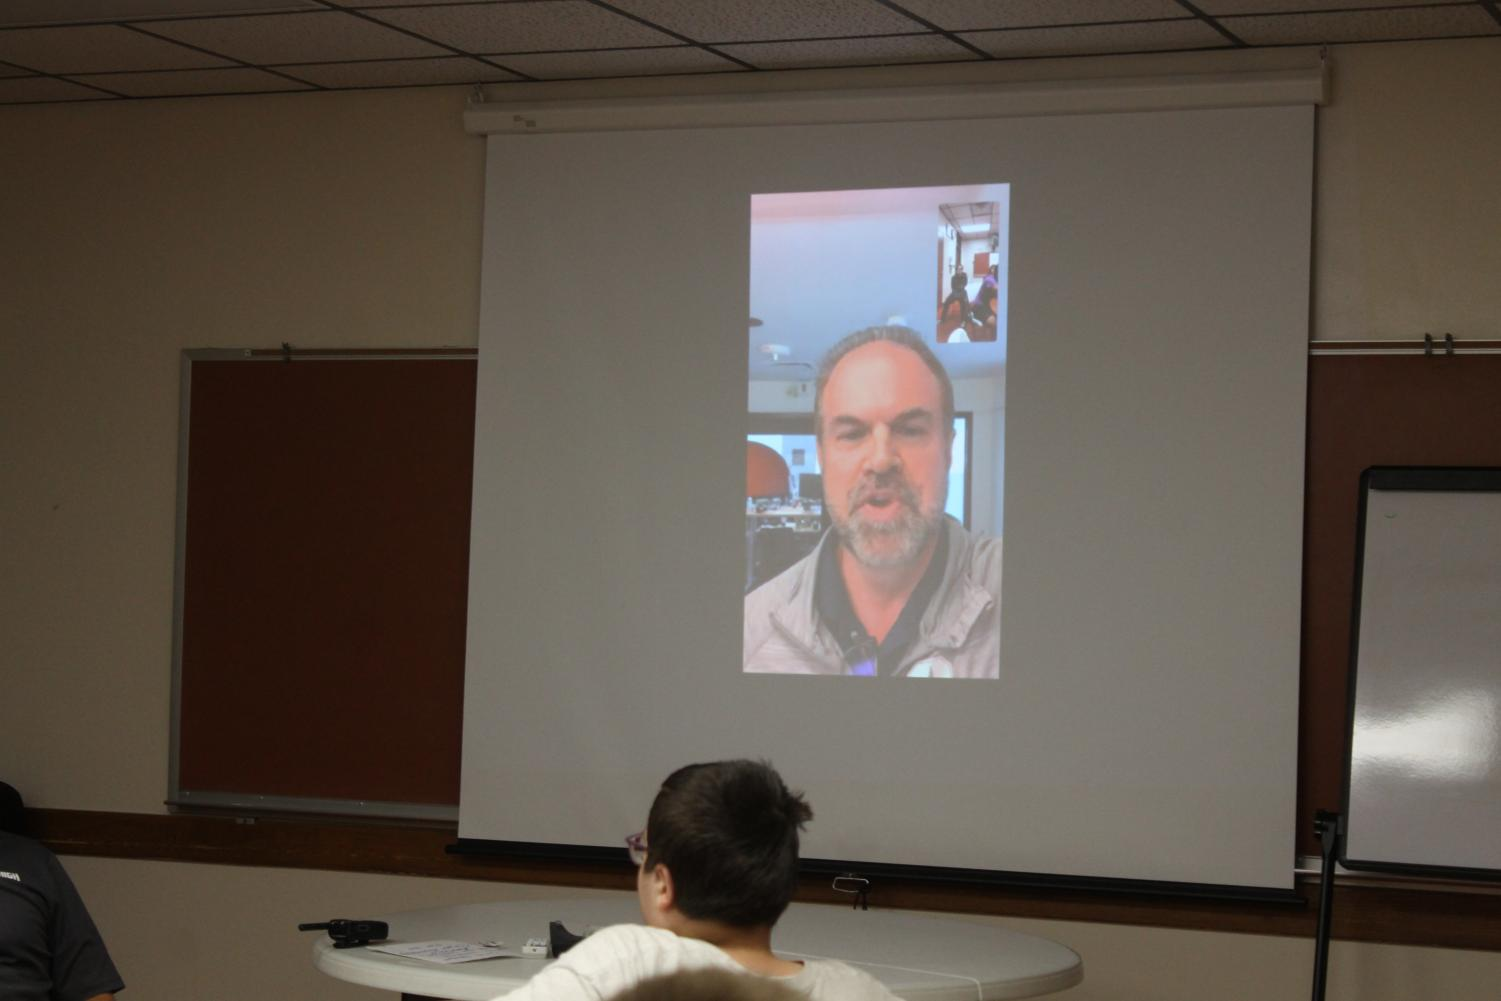 Career speaker Dale Wentmore spoke to students over FaceTime from his office in Denver.